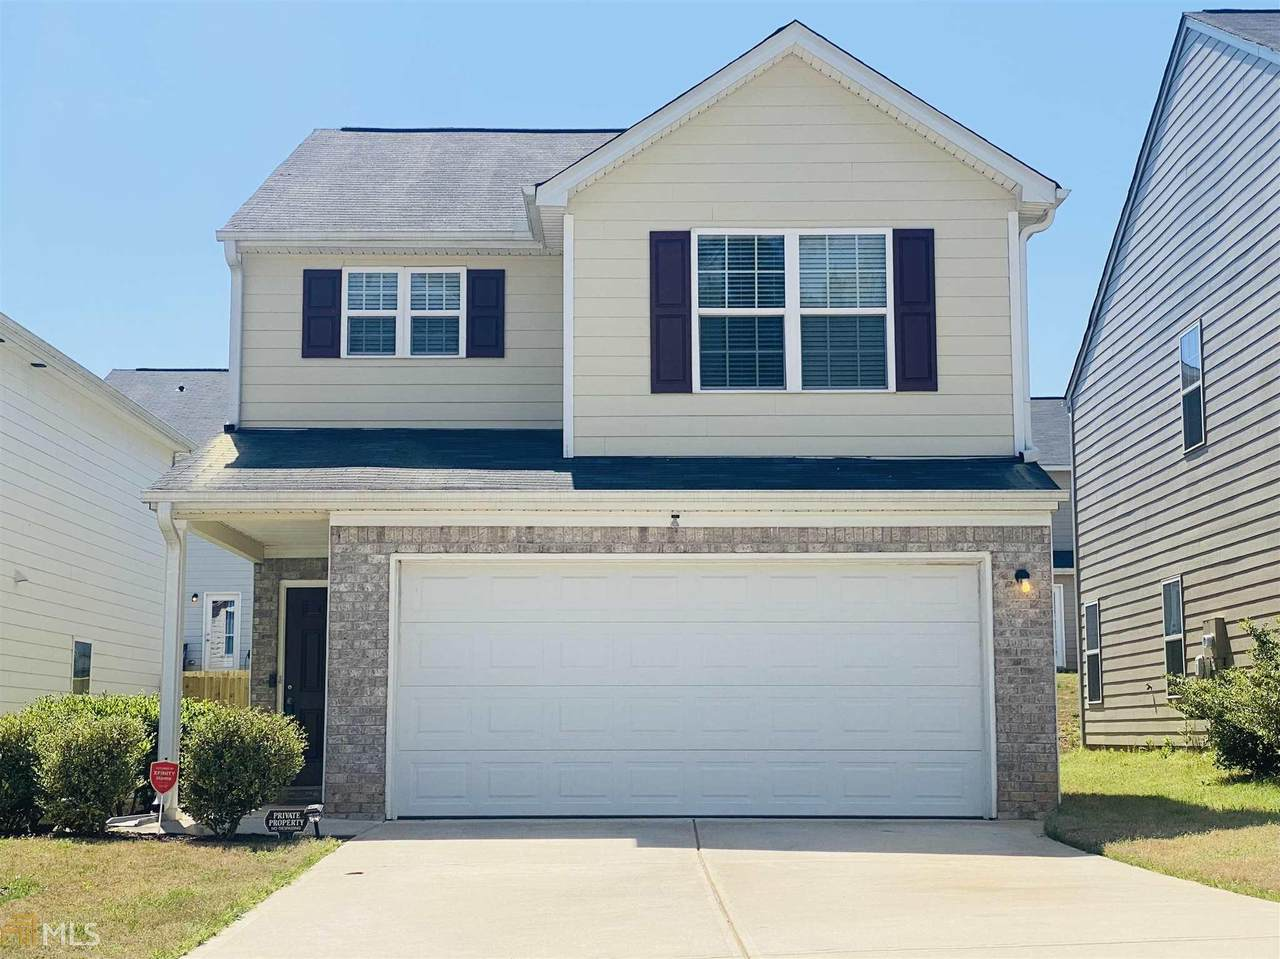 1570 Onalee Dr - Photo 1